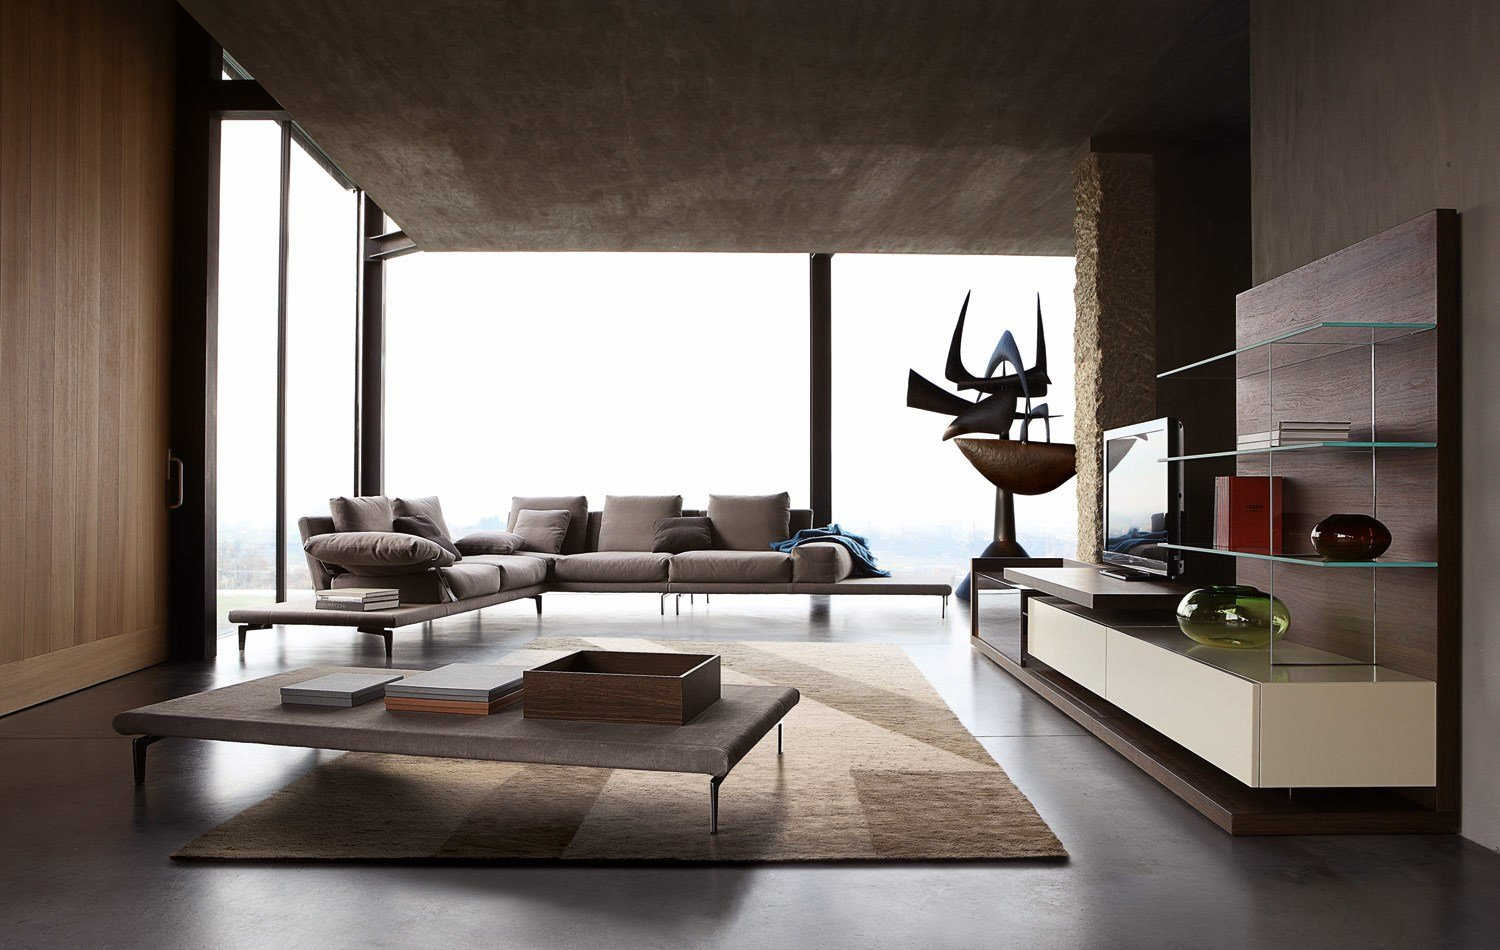 Sectional modular sofa echoes by roche bobois design mauro lipparini for Sofa contemporain design